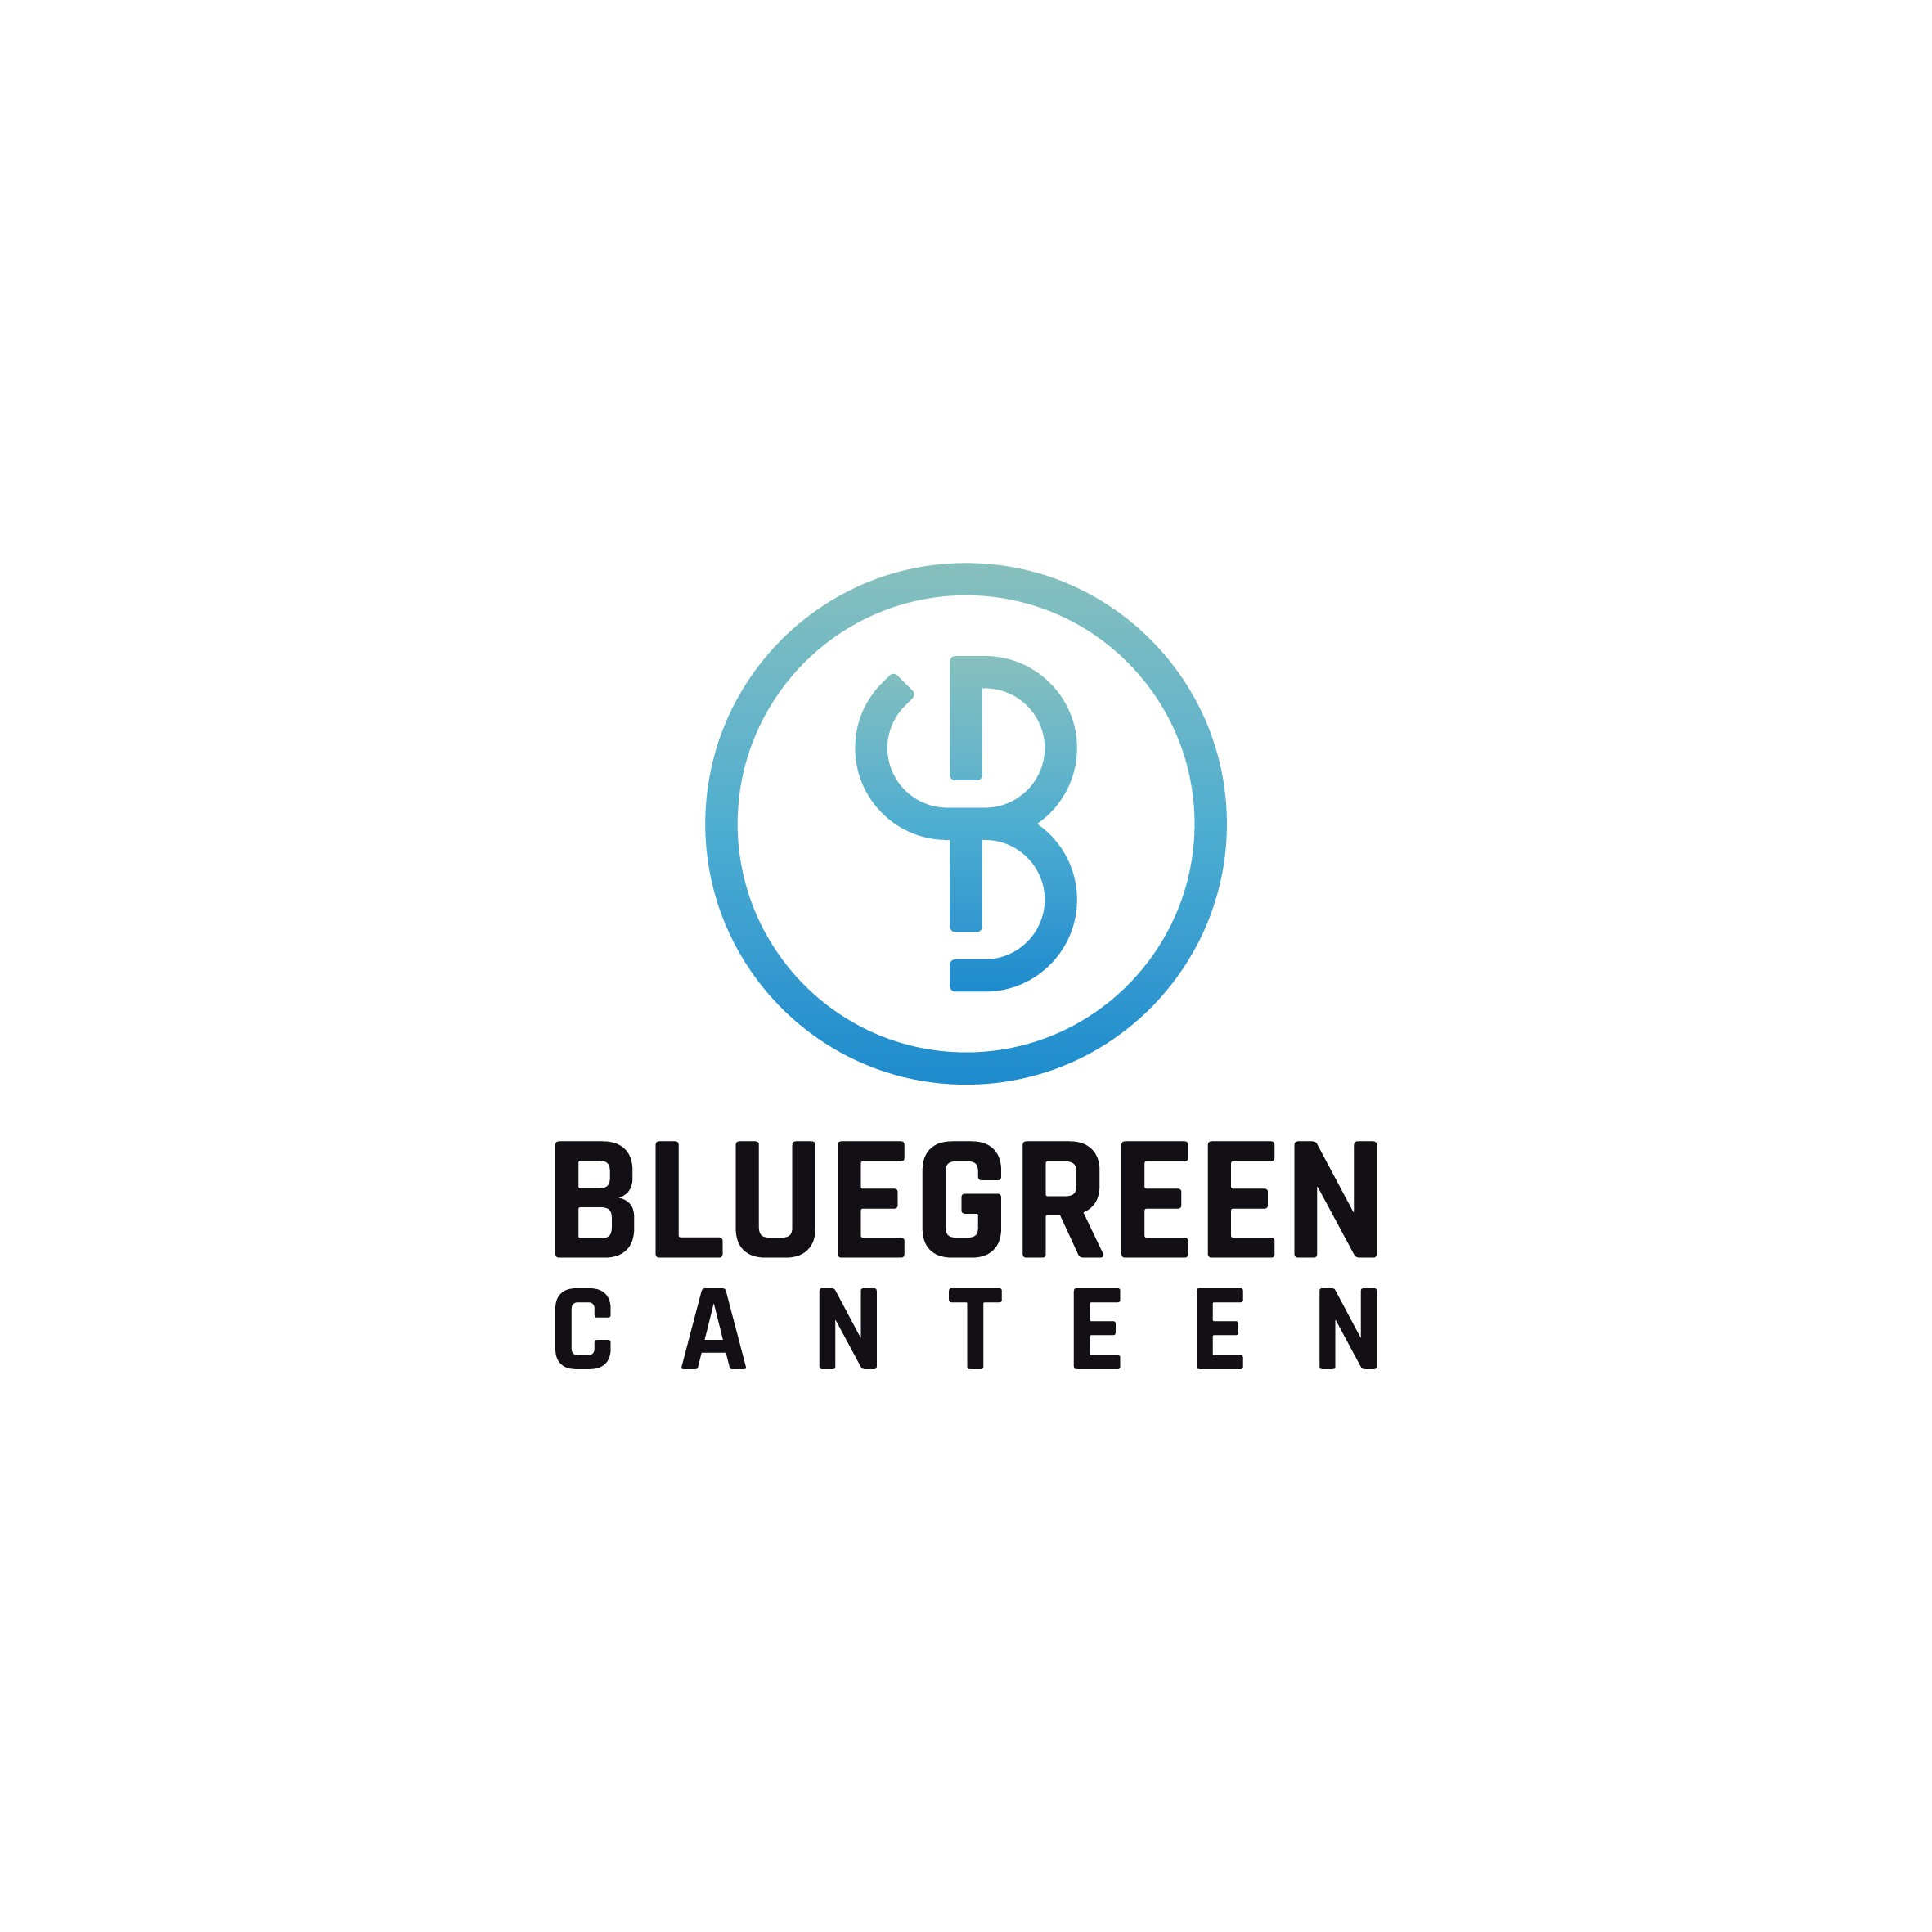 Create from scratch an upscale, modern/contemporary,chic, sophisticated, logo for Bluegreen Canteen.